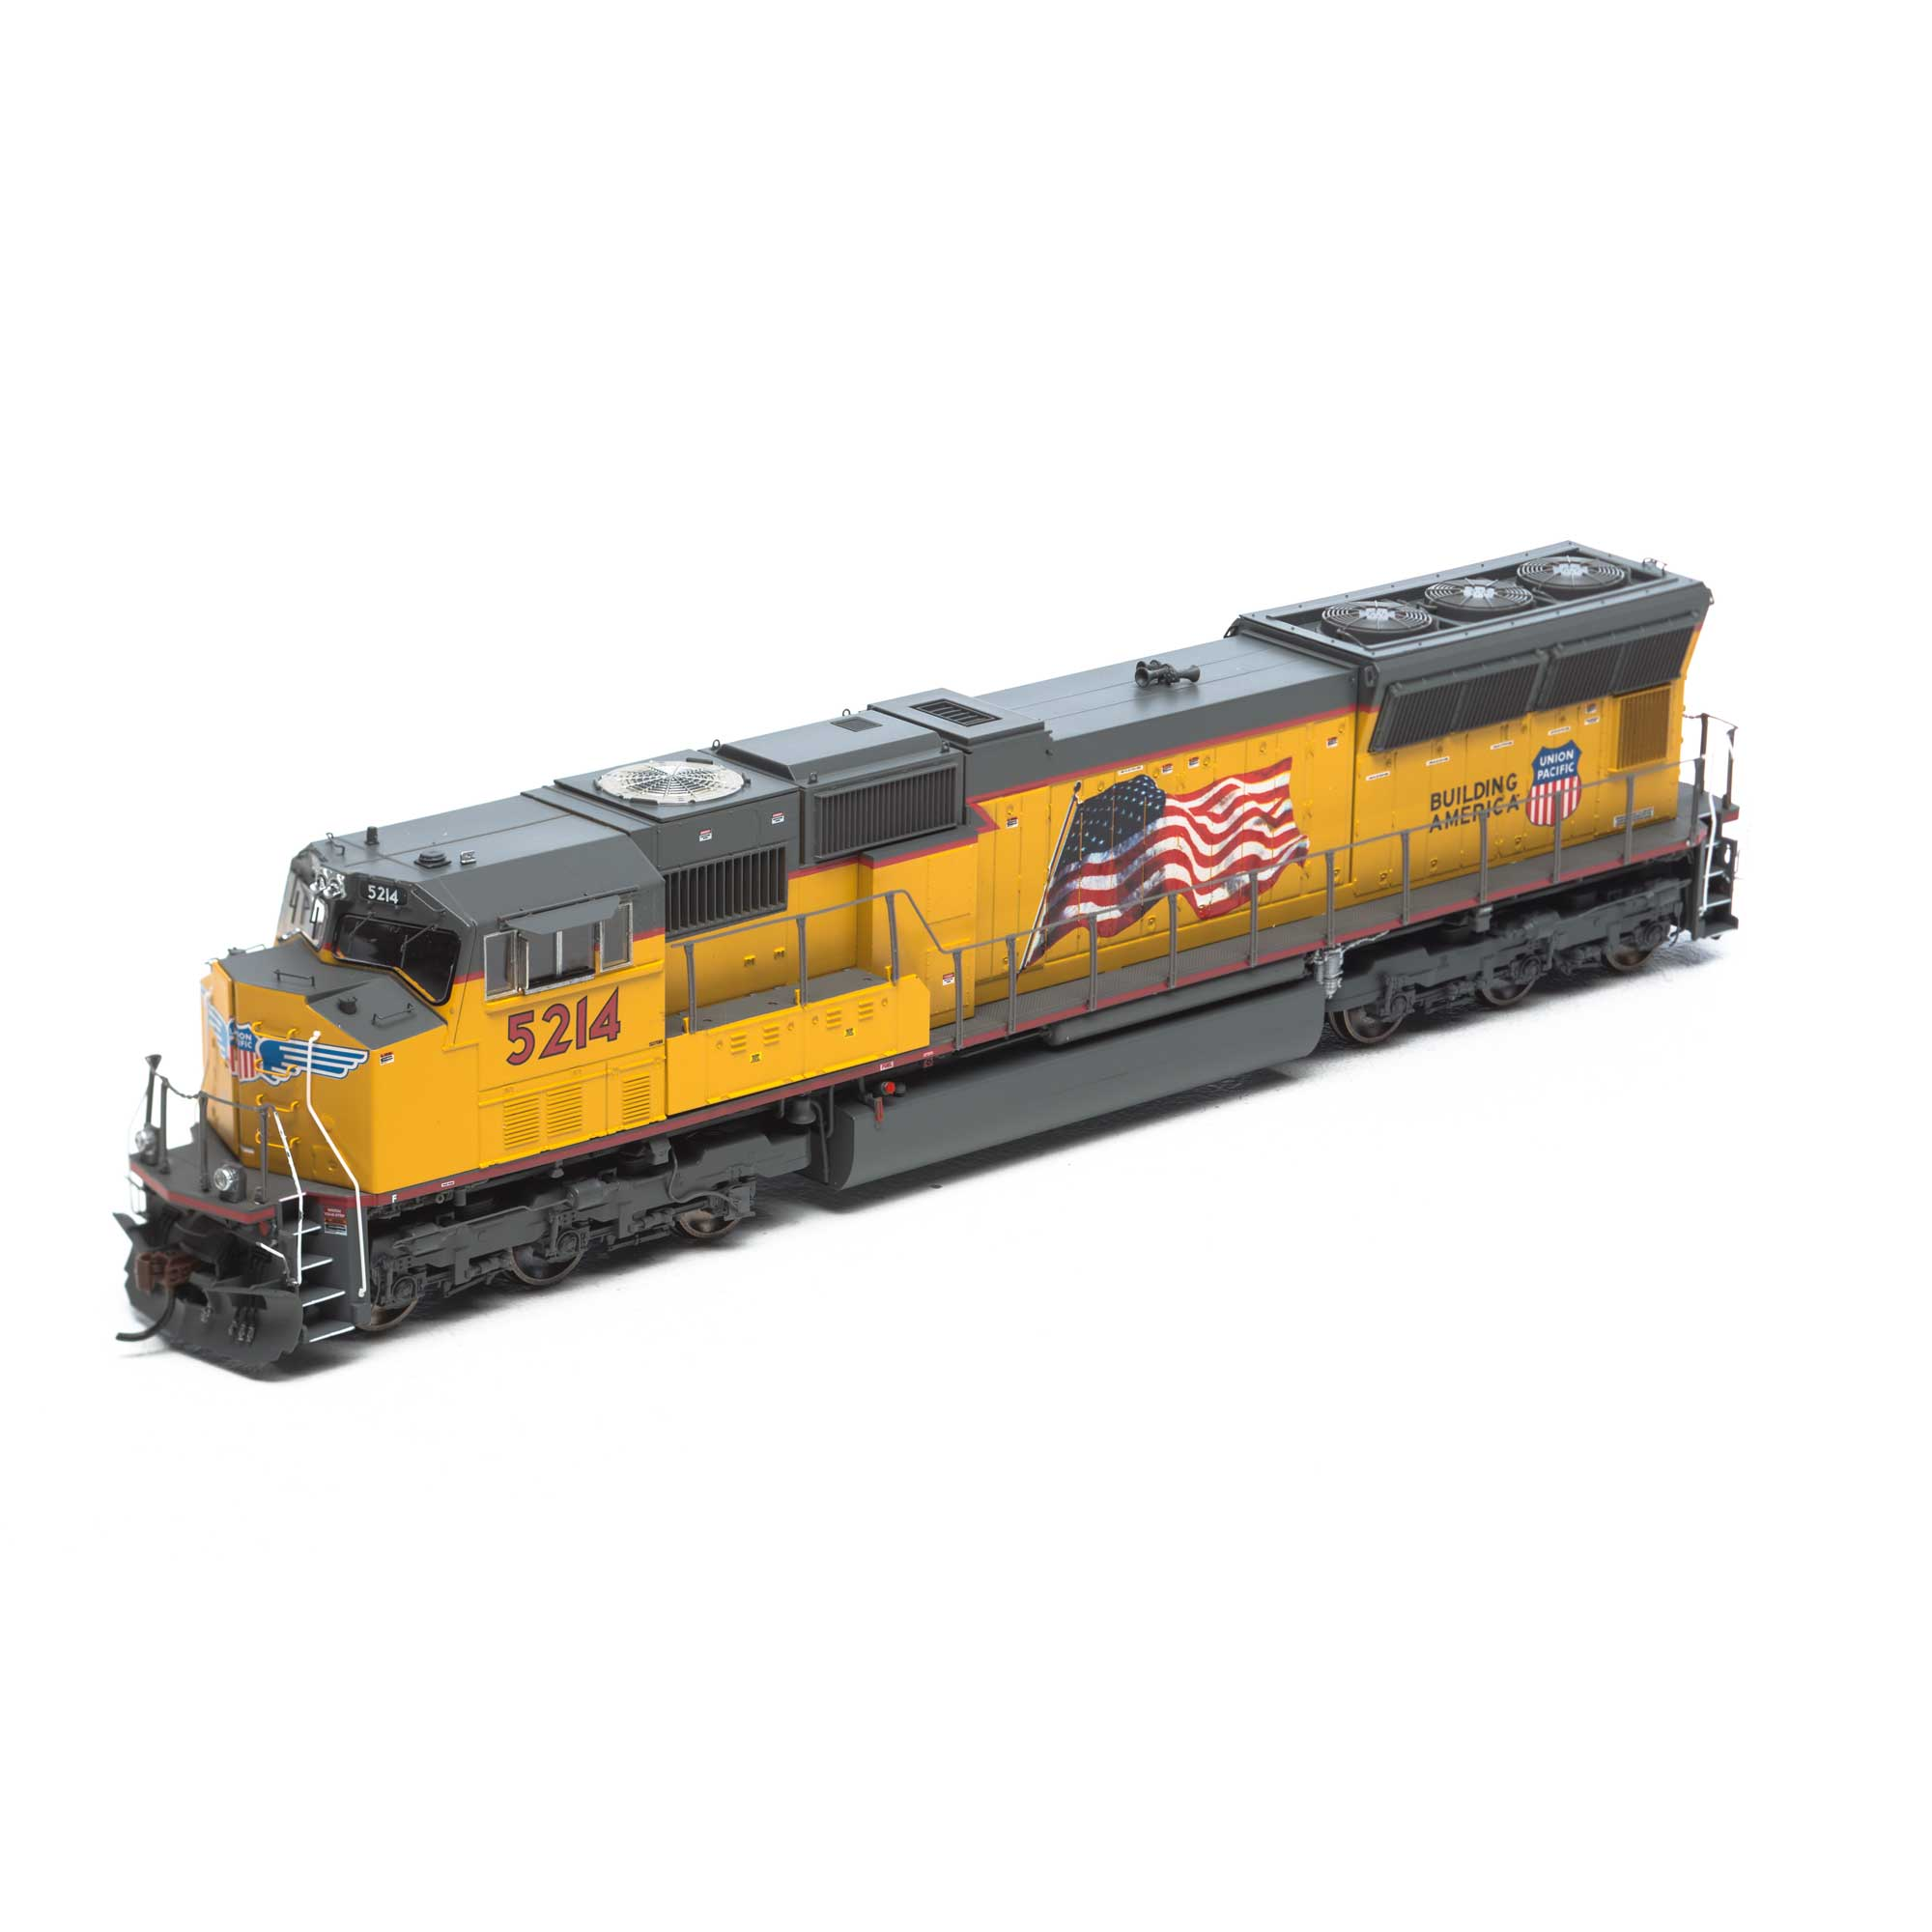 Ho Sd70m W Dcc Sound Up Flag 5214 Athg69342 Athearn Trains